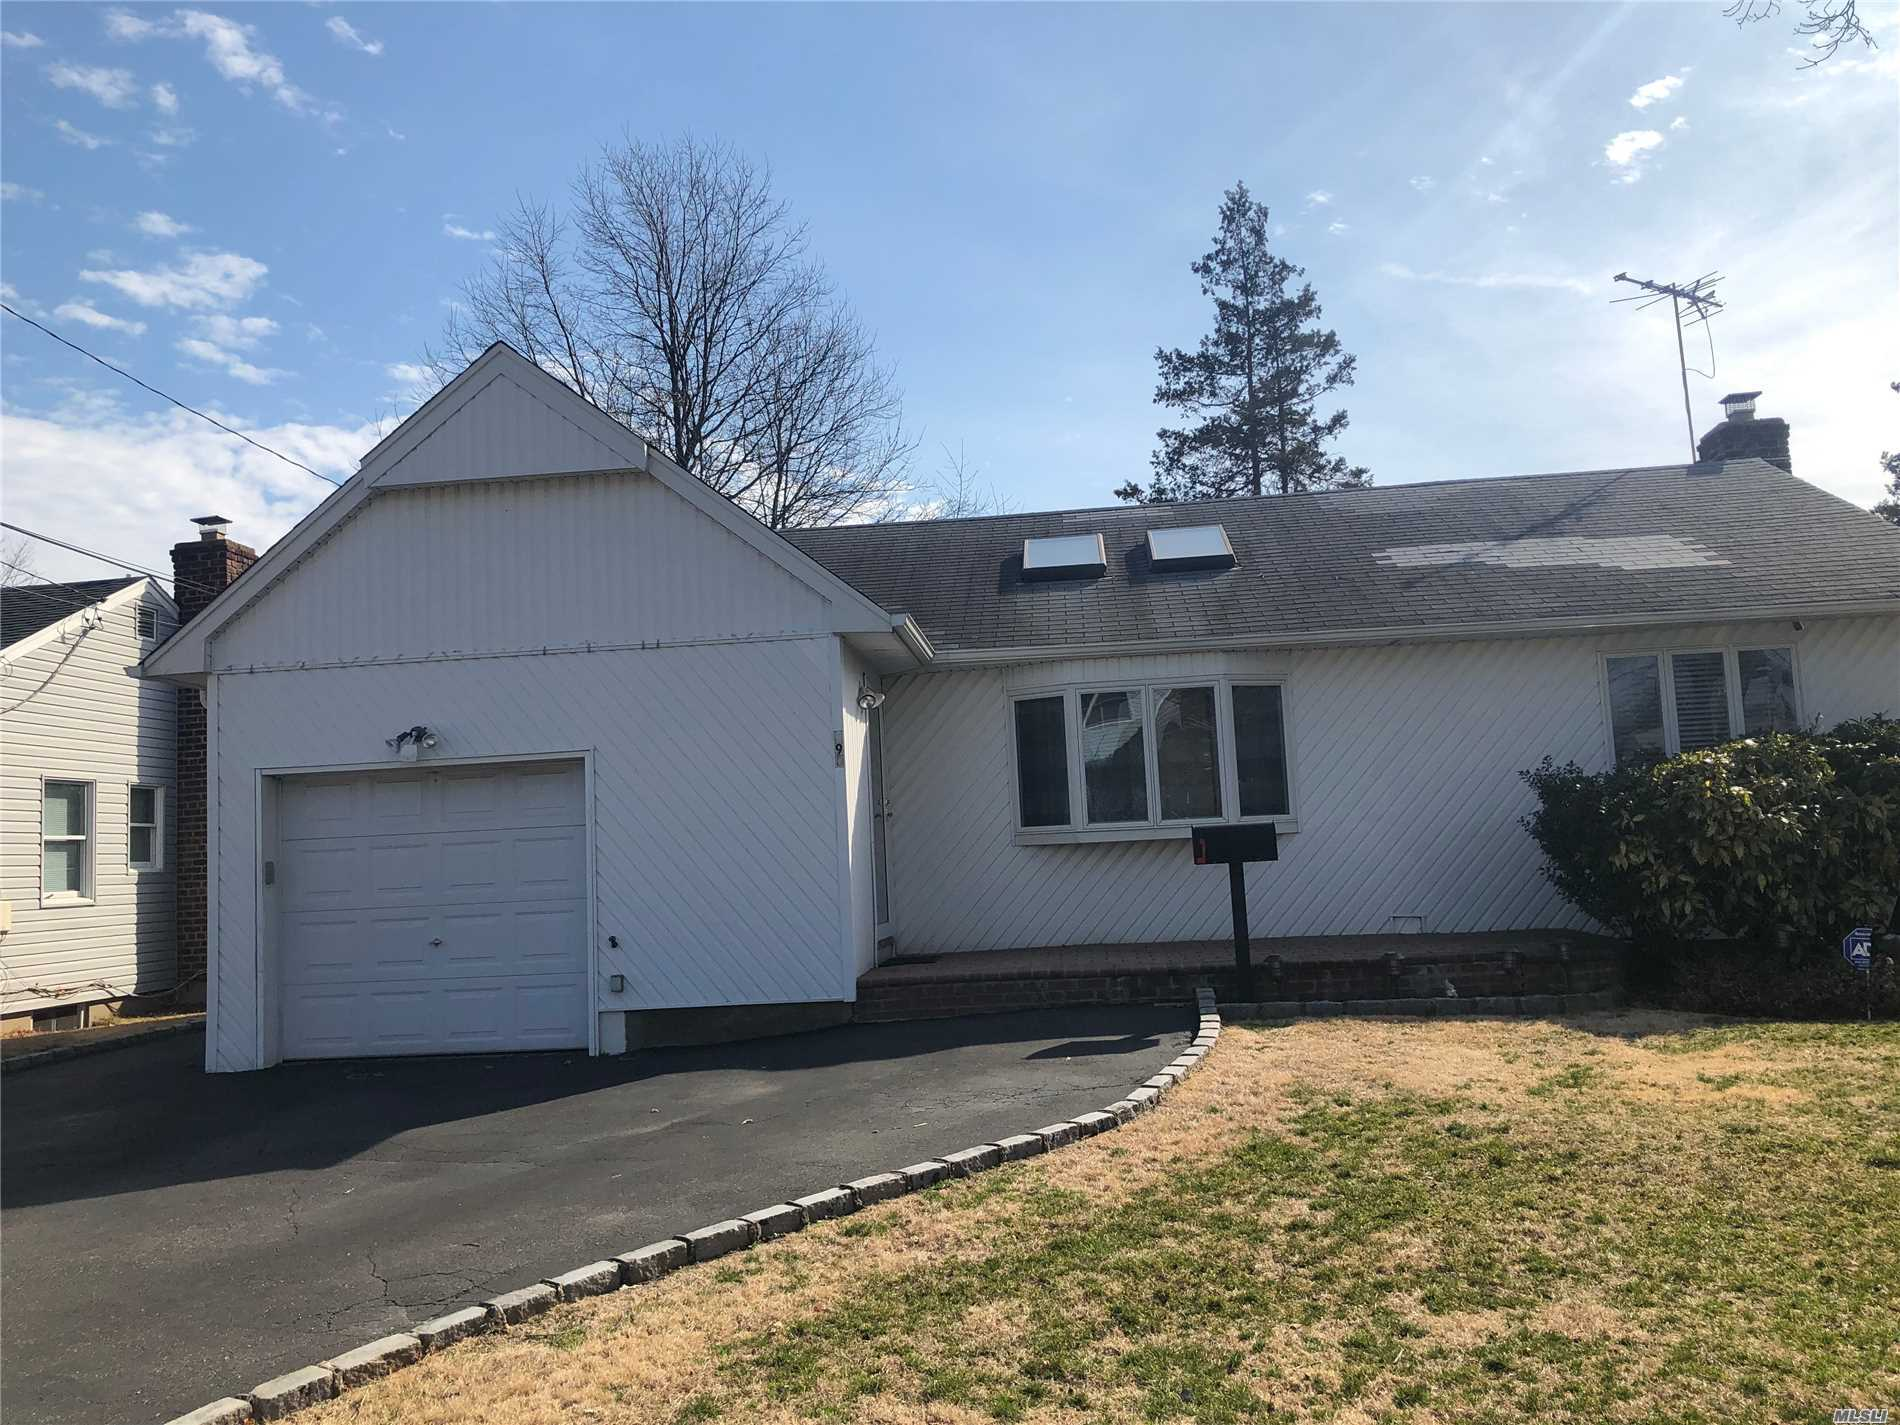 Excellent Ranch Home Featuring LV, FDR, Updated KIT with Granite Countertop, Stainless Appliances, Hardwood Floors, Updated Bath, CAC, Fireplace, 3Bdr, Finished Bsmt W/OSE, Conveniently Located to All Shopping Area and Highway.